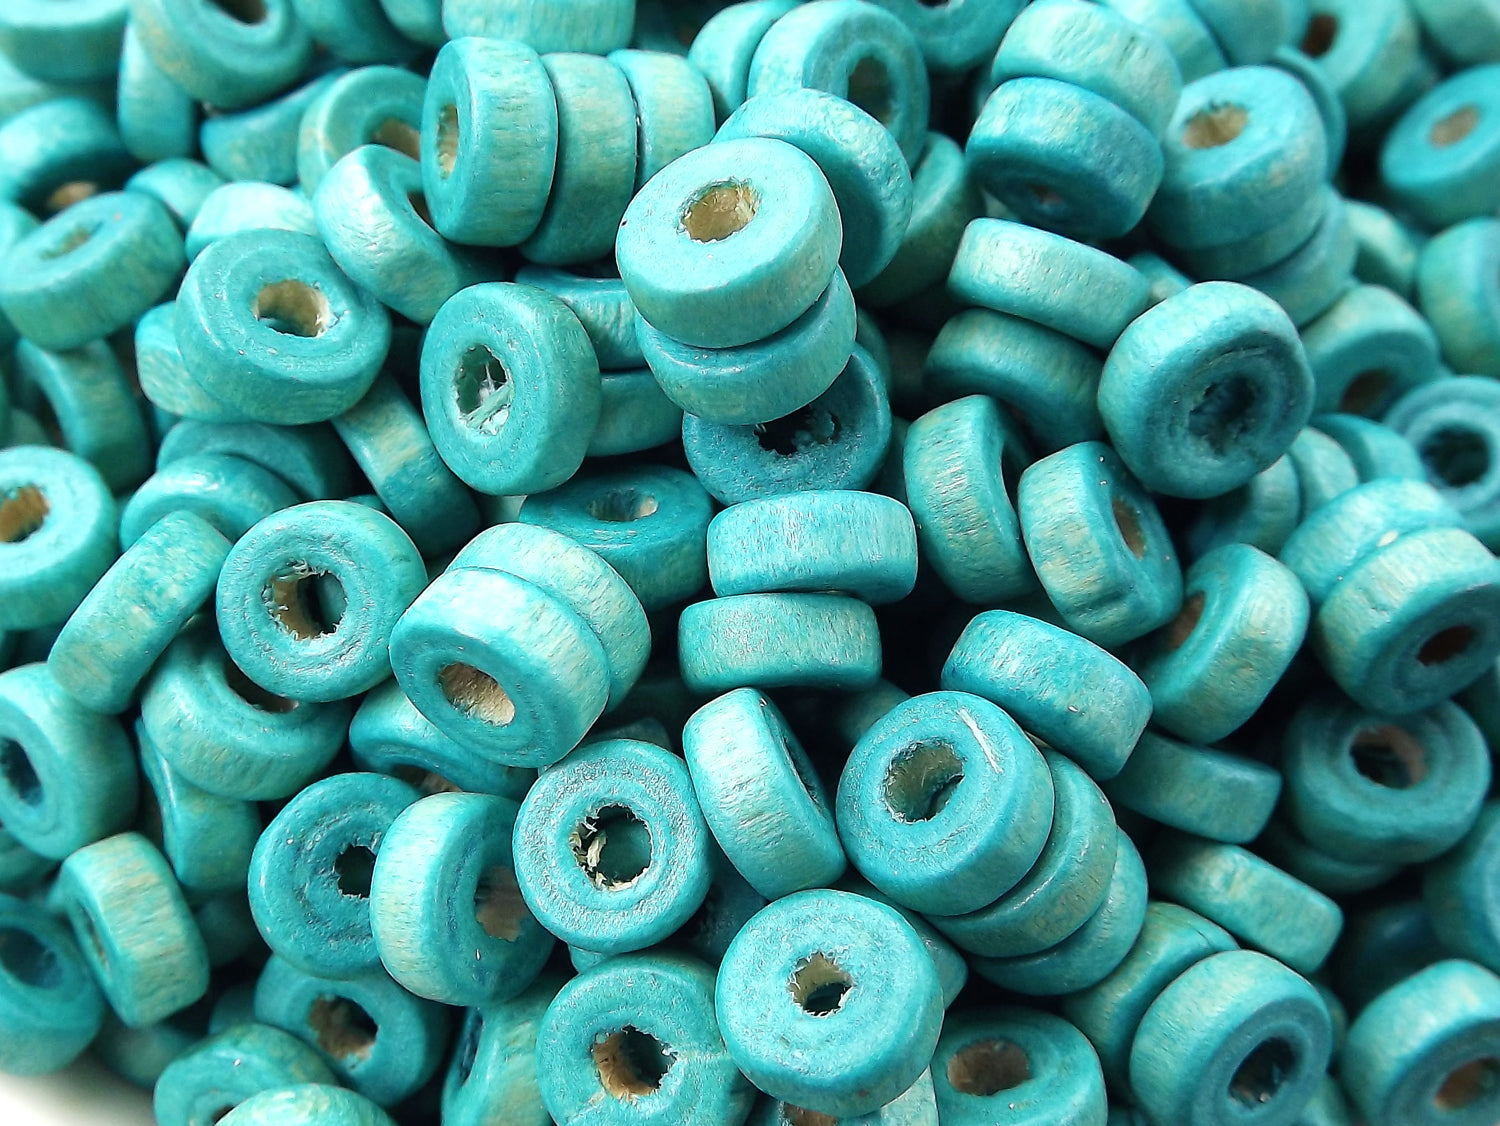 200pcs or 400pcs Aqua Blue Round Rondelle Heishi Wood Beads Satin Varnished Plain Simple Round Smooth Ball Bead Spacers 8mm Choose 50pcs